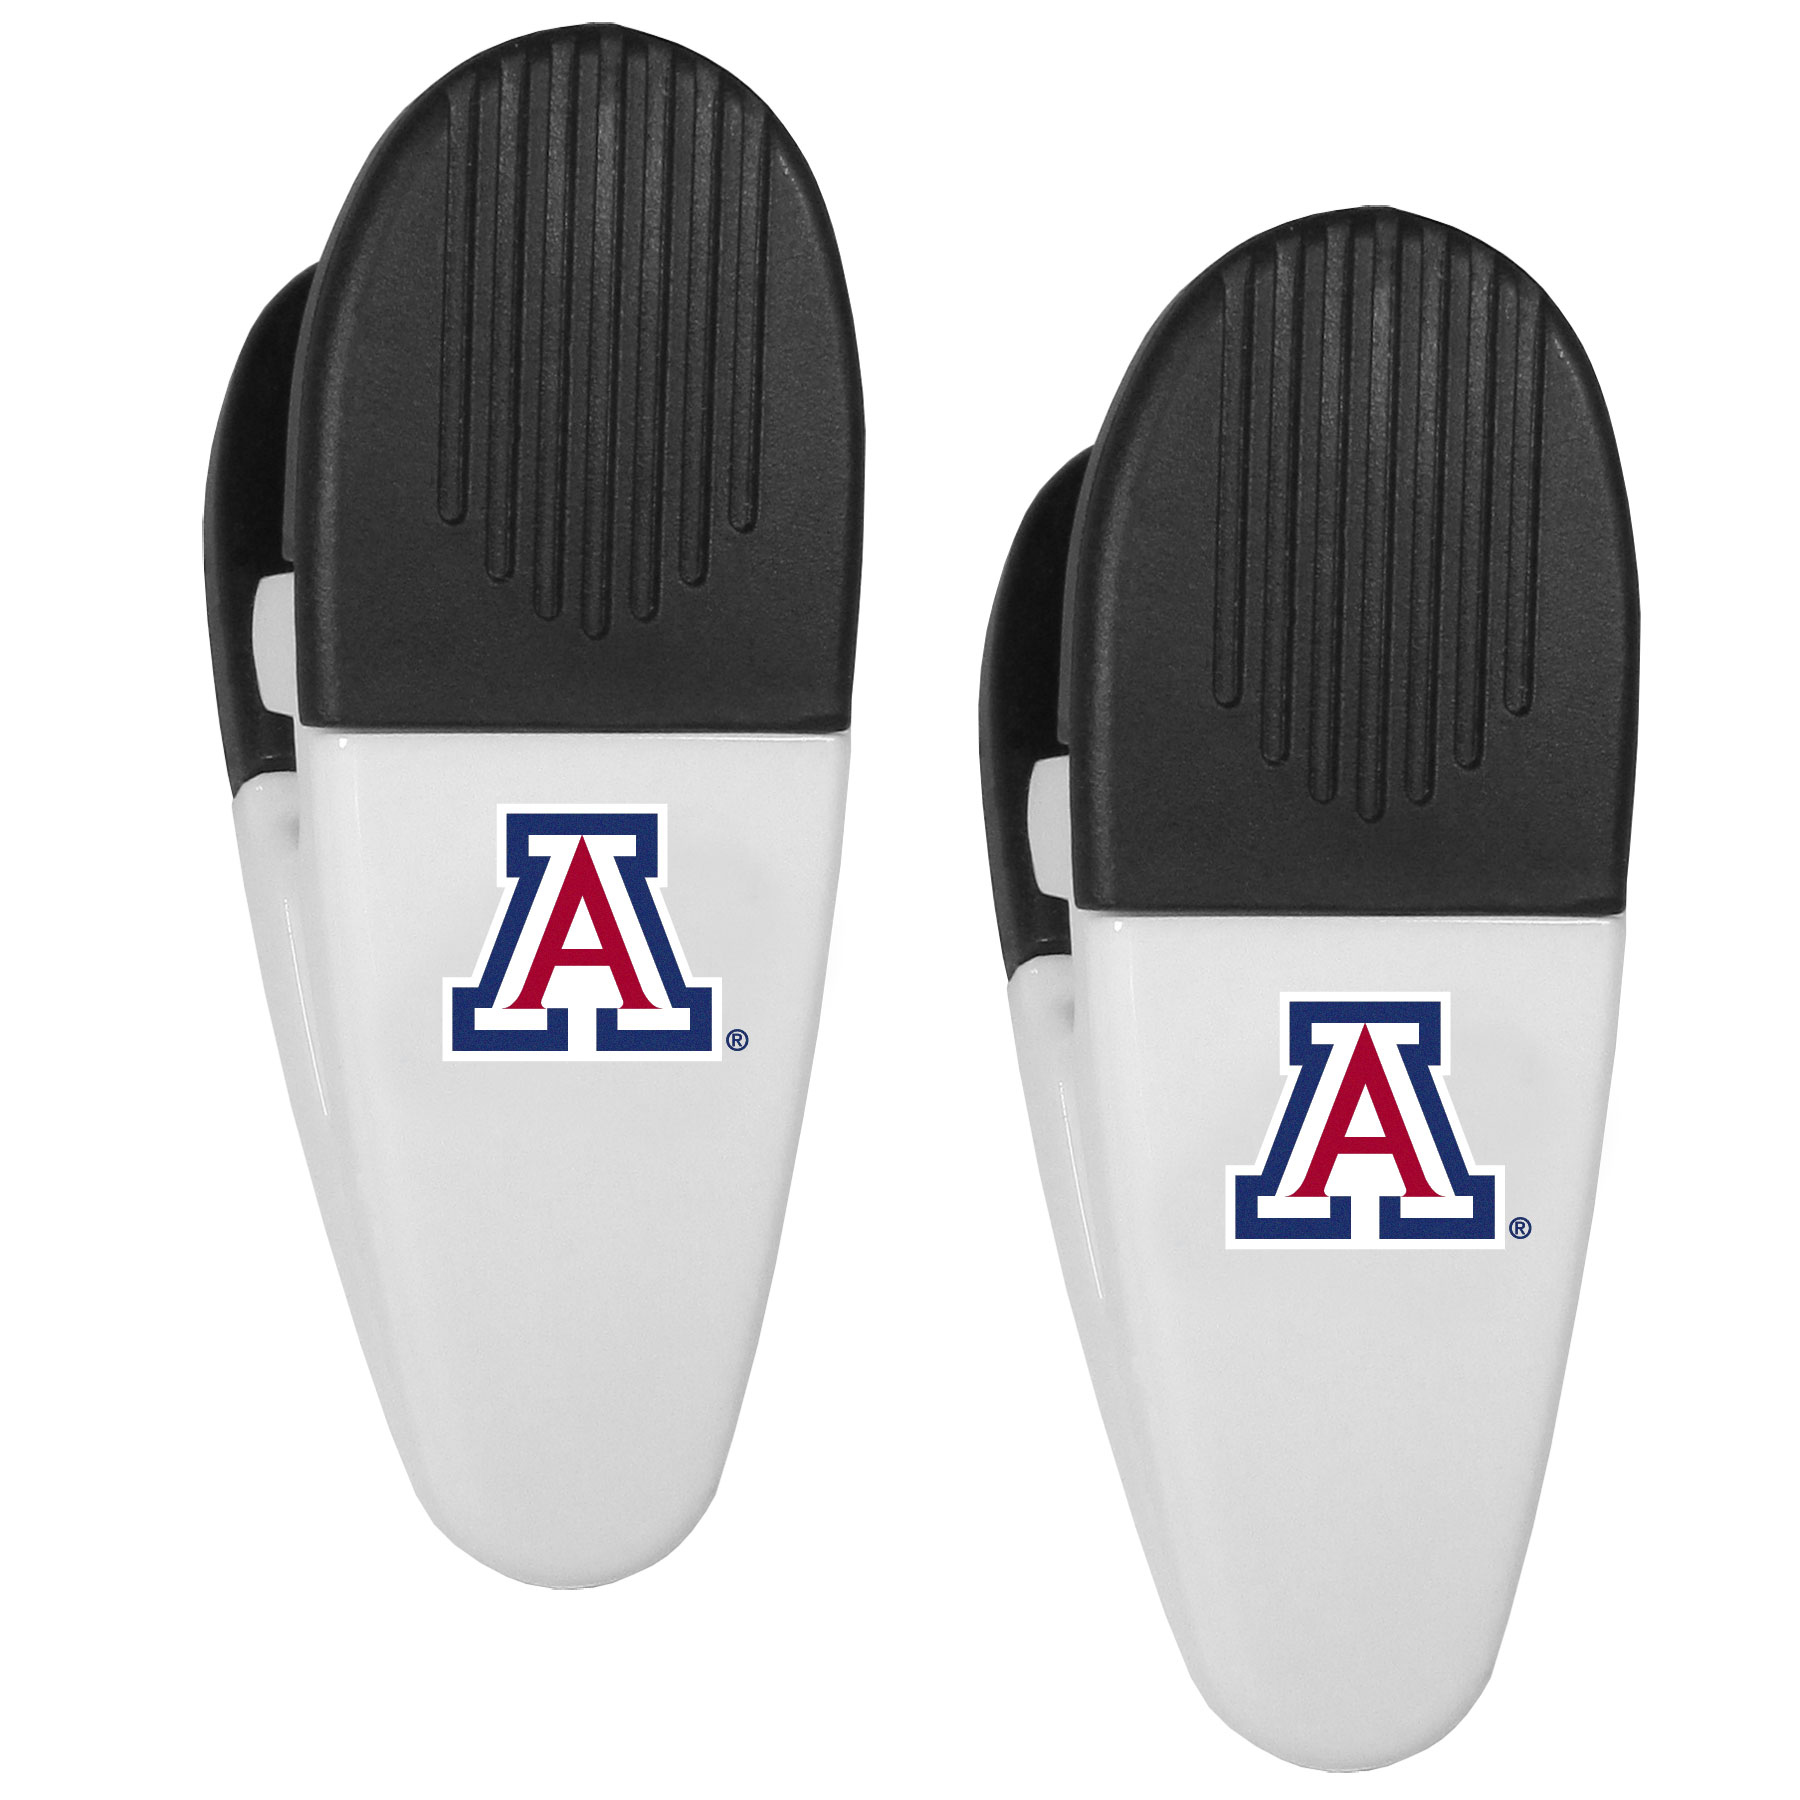 Arizona Wildcats Mini Chip Clip Magnets, 2 pk - Our Arizona Wildcats chip clip magnets feature a crisp team logo on the front of the clip. The clip is perfect for sealing chips for freshness and with the powerful magnet on the back it can be used to attach notes to the fridge or hanging your child's artwork. Set of 2 magnet clips, each clip is 3.5 inches tall and 1.25 inch wide.